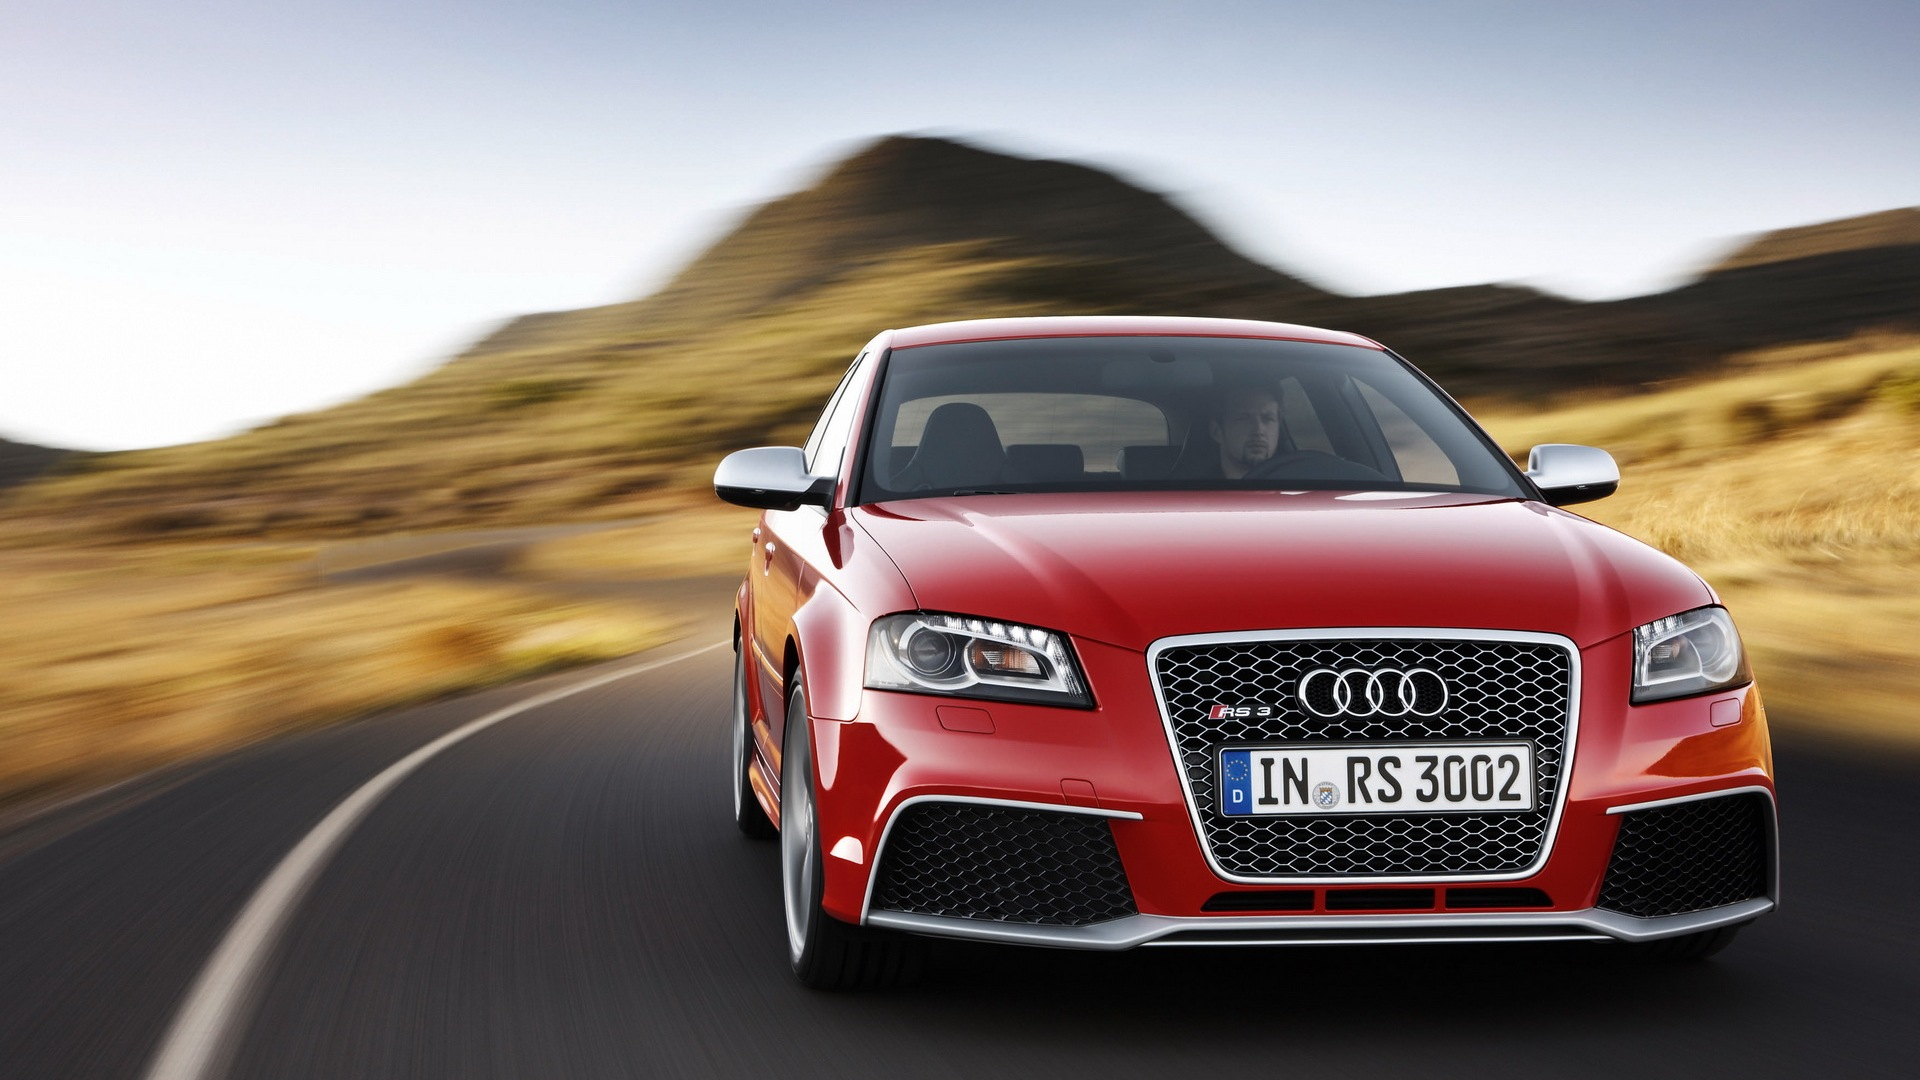 43 Audi Wallpapers Backgrounds In Hd For Free Download